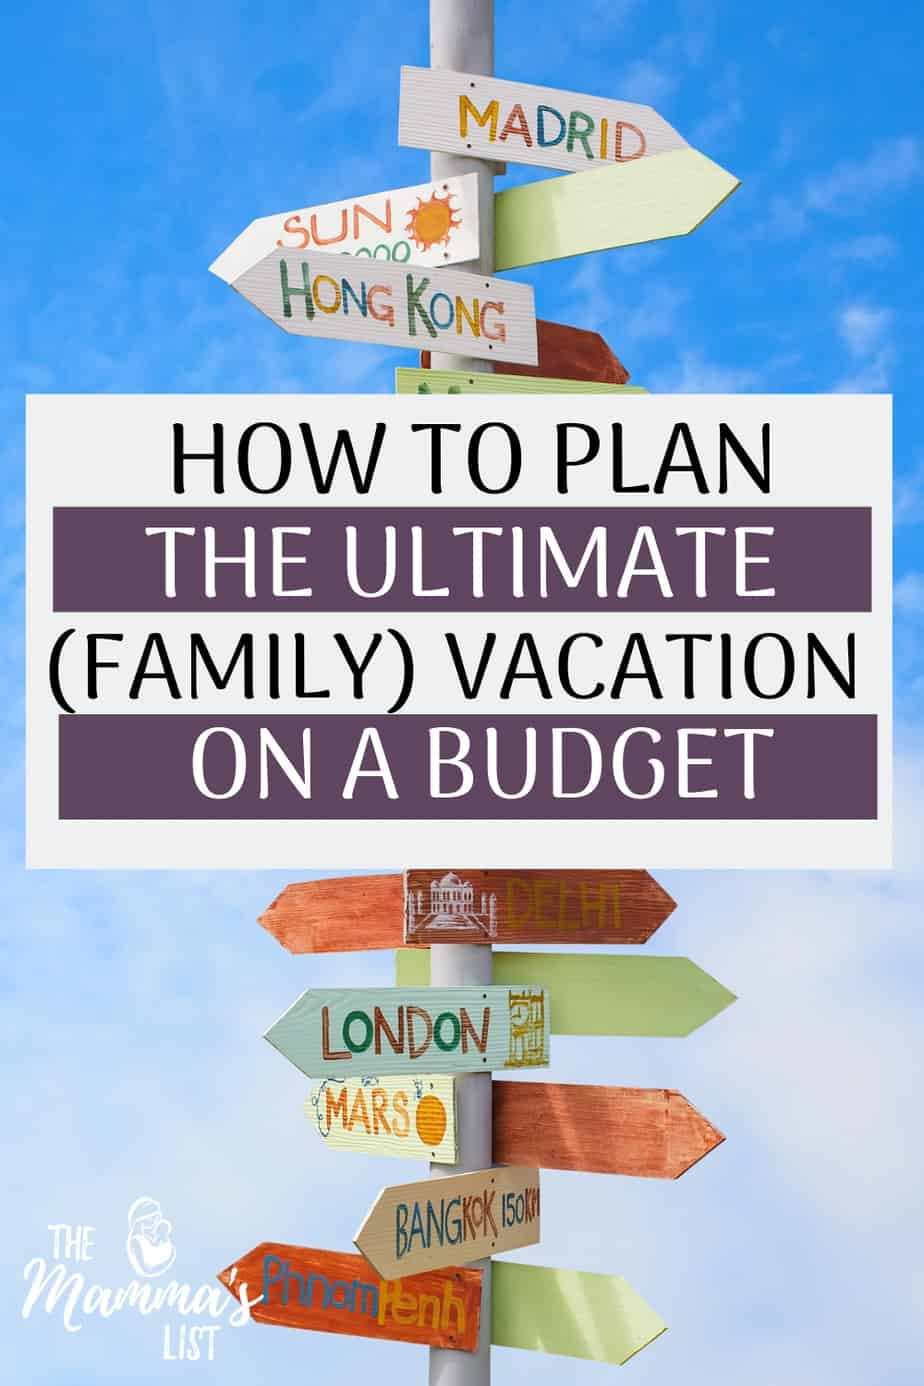 7 top tips to plan a vacation from a to z, on a budget! Sometimes it's hard to know where to start when planning a big family vacation? Check out the seven steps we use to plan an amazing vacation that doesn't break the bank. Planning your next vacation should be fun, and with a little prep, you'll be on your way (and under budget) in no time!